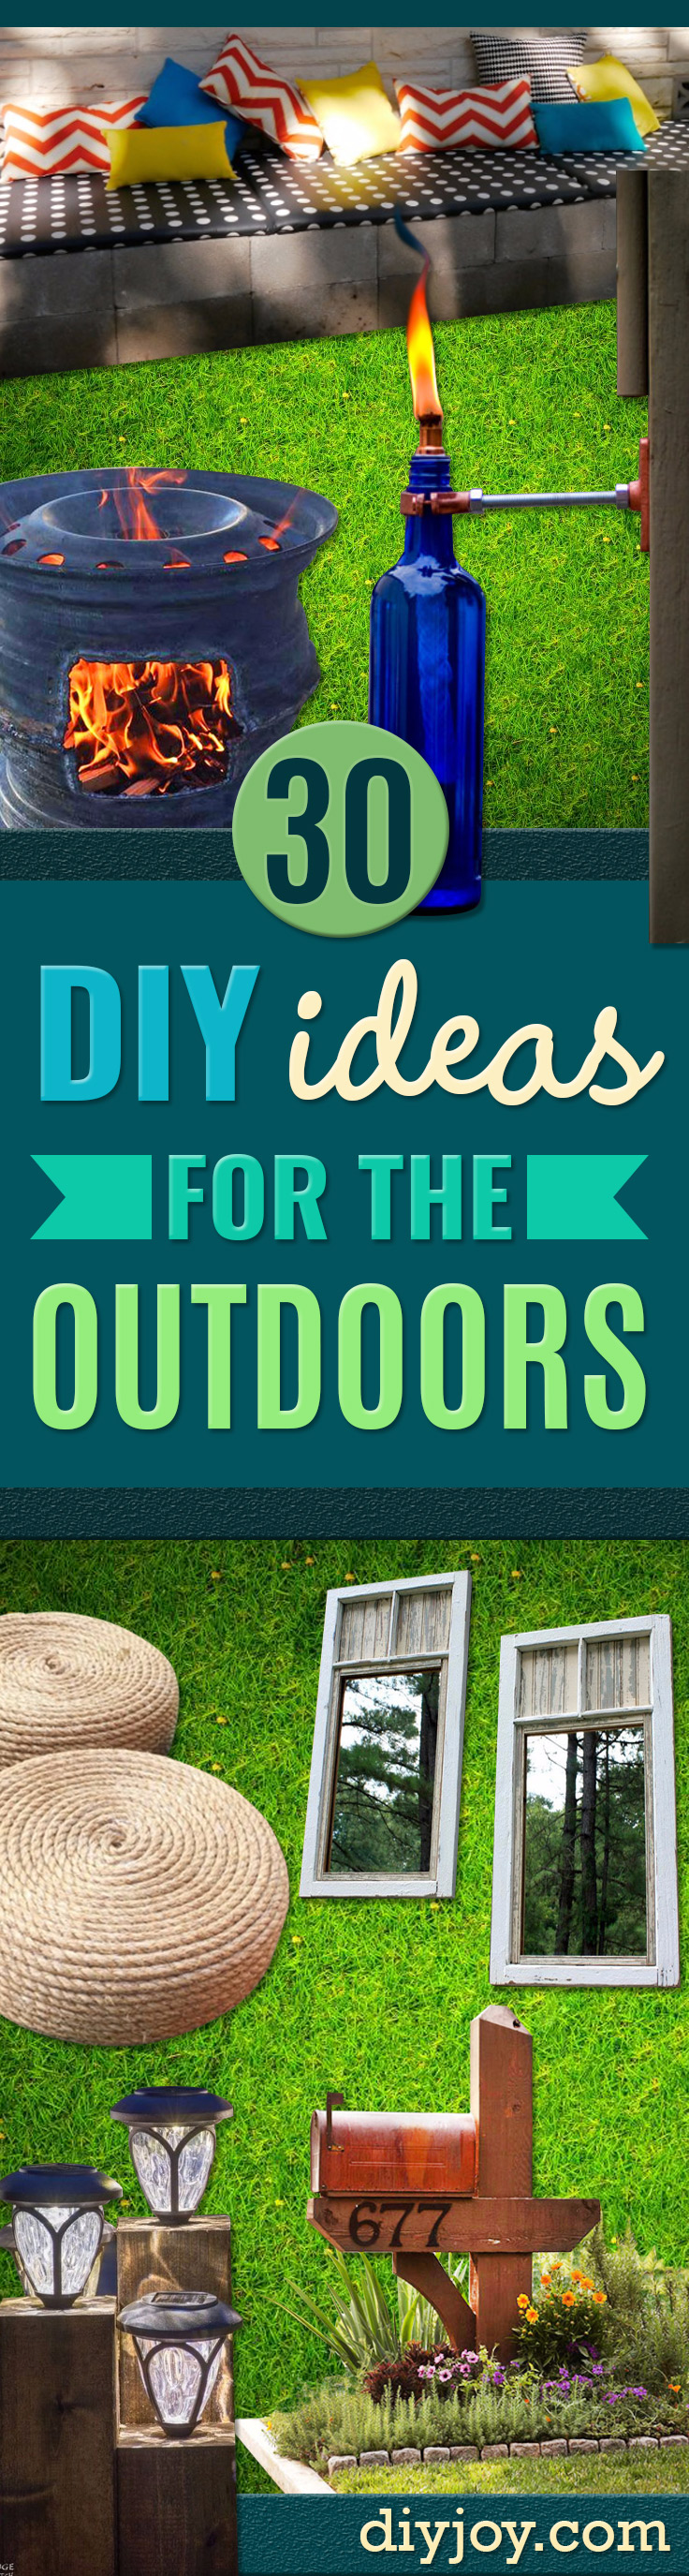 diy ideas outdoors DIY - Best Do It Yourself Ideas for Yard Projects, Camping, Patio and Spending Time in Garden and Outdoors - Step by Step Tutorials and Project Ideas for Backyard Fun, Cooking and Seating #diy